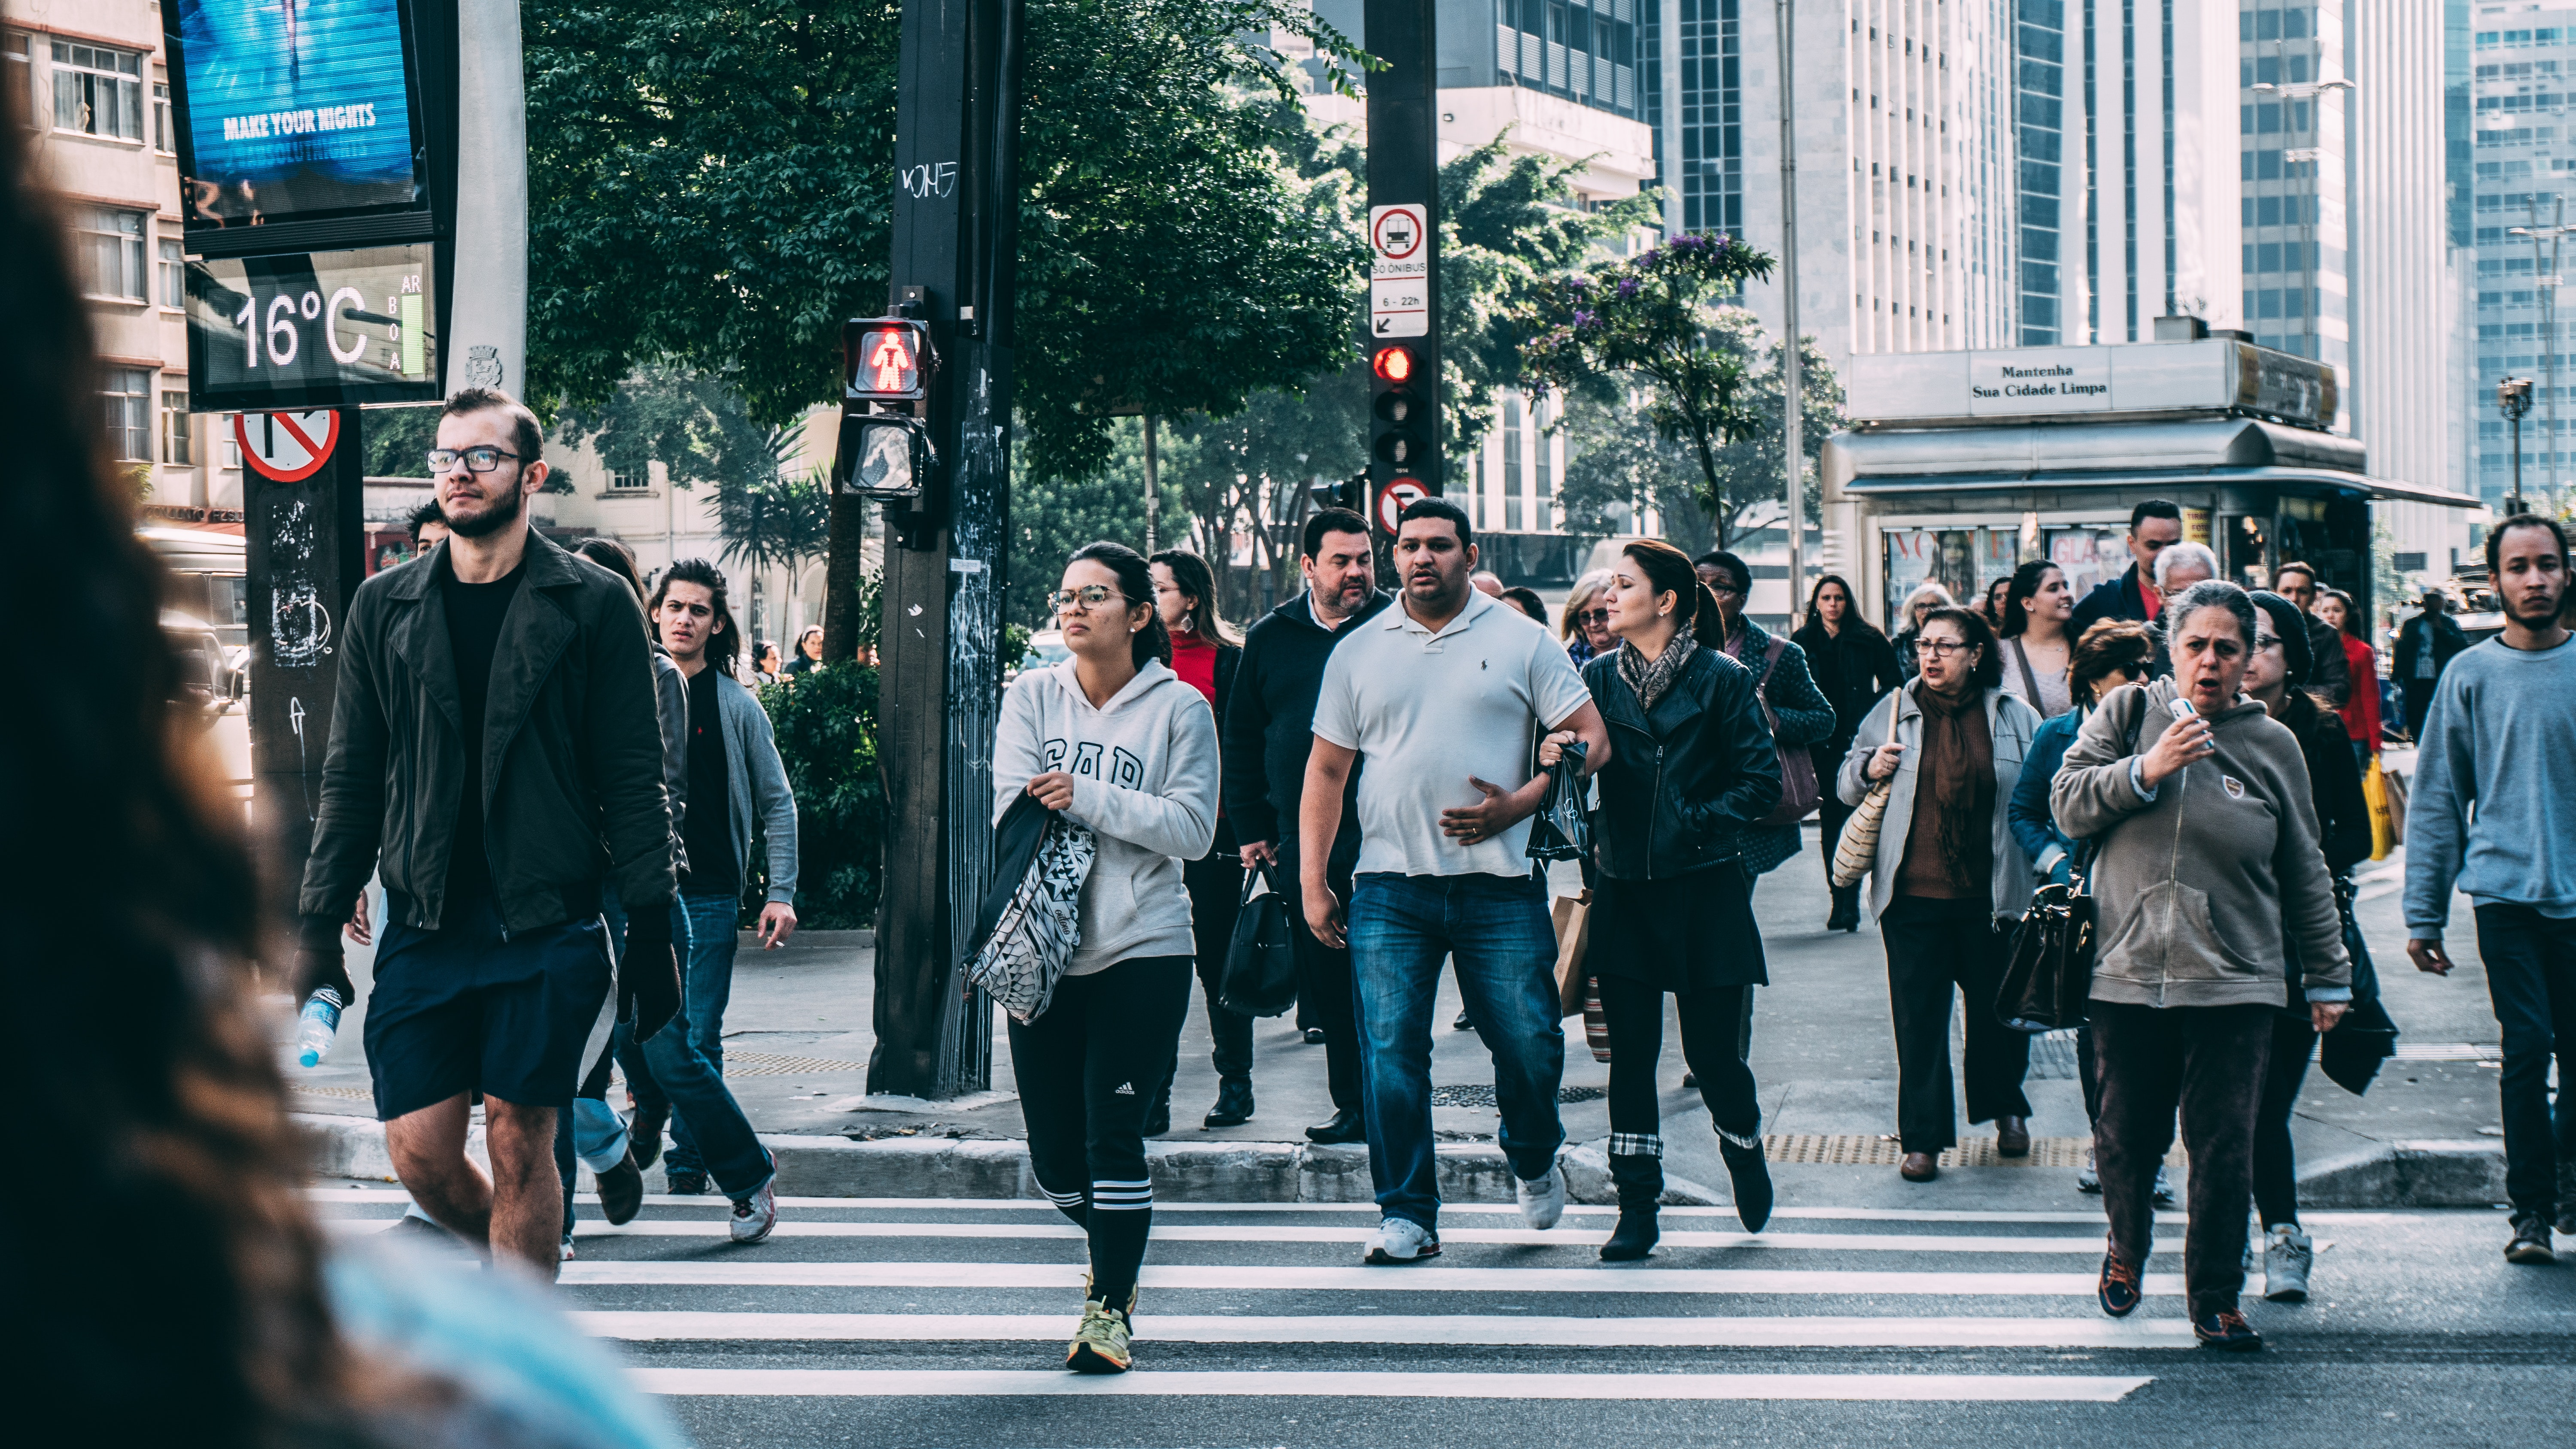 Crowd of people crossing a city crosswalk